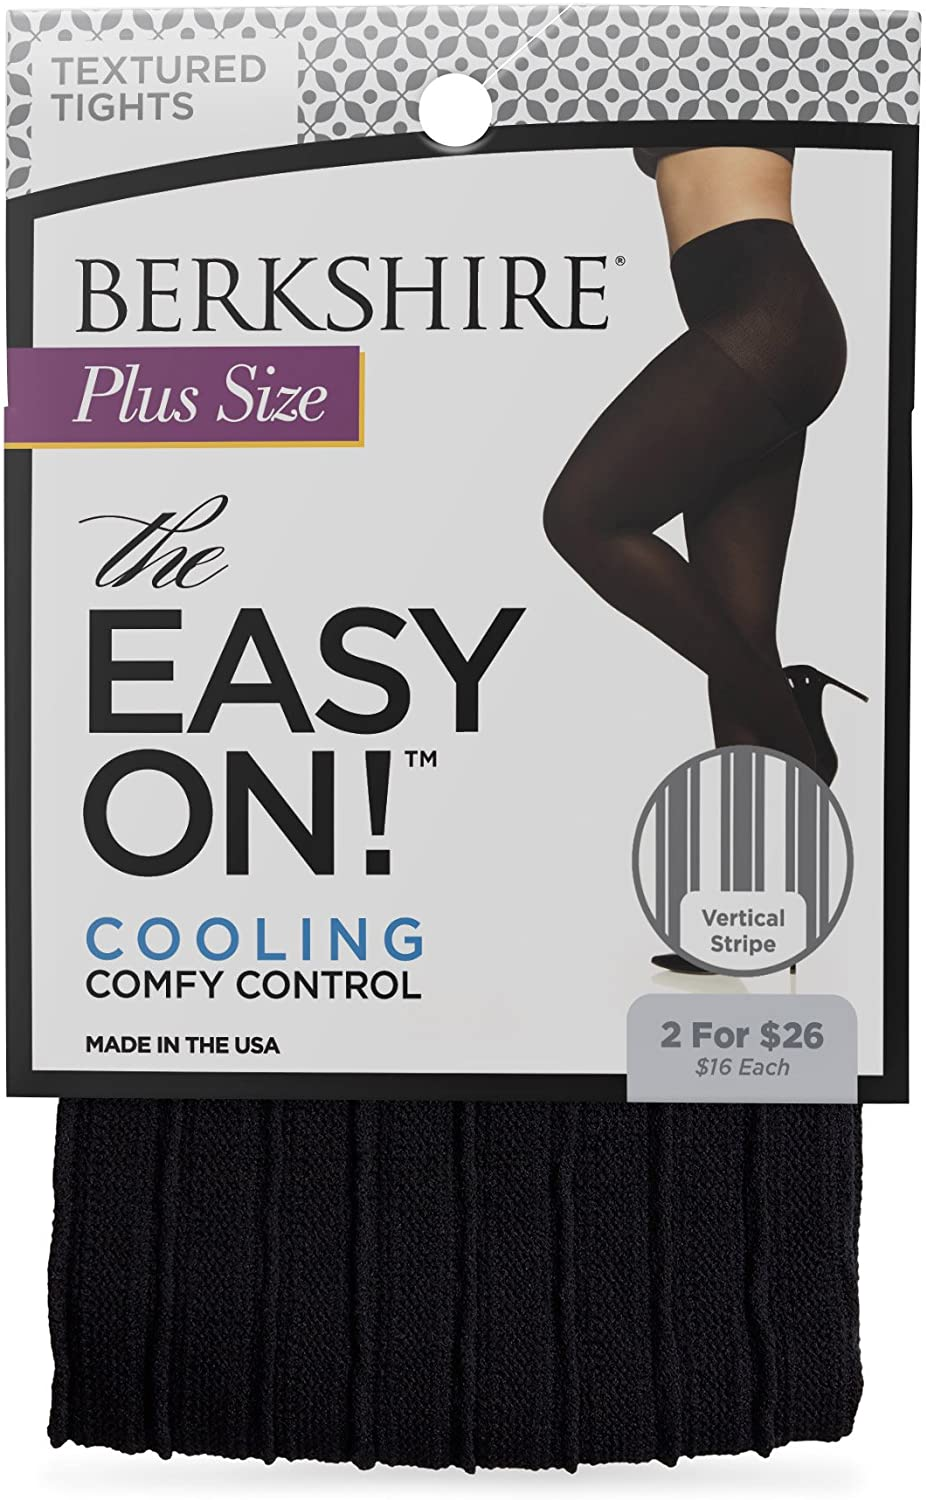 Berkshire The Easy On! Vertical Stripe Plus Size Tights